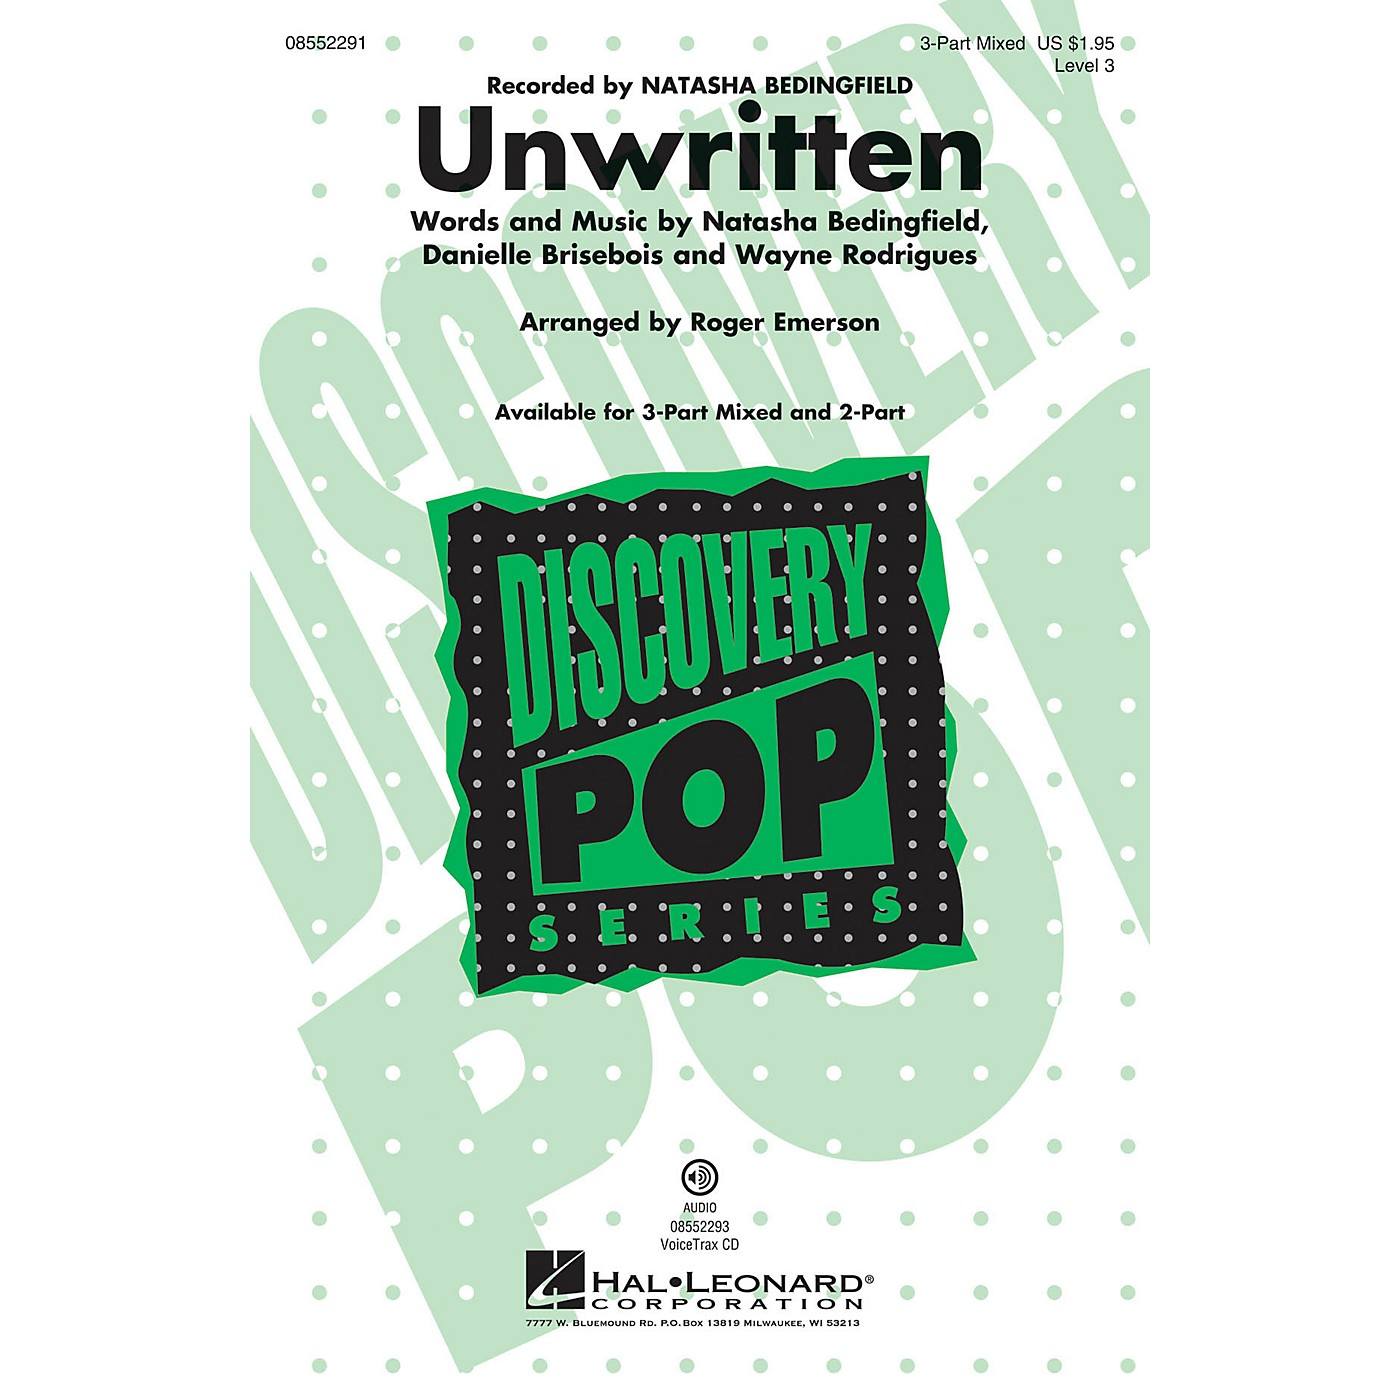 Hal Leonard Unwritten (Discovery Level 3 2-Part) 2-Part by Natasha Bedingfield Arranged by Roger Emerson thumbnail